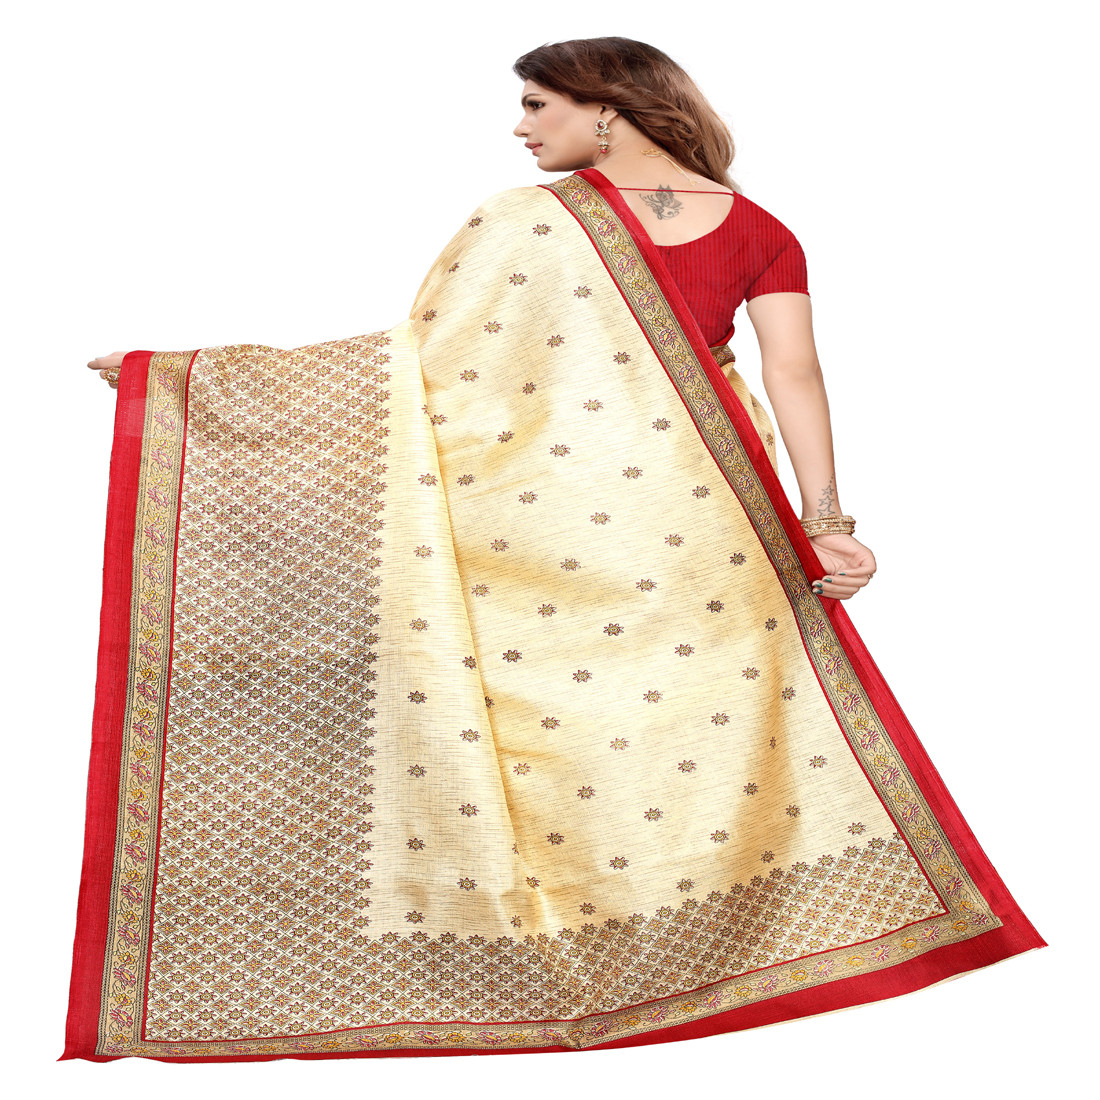 Designer Khadi Silk red Border Chiku Saree